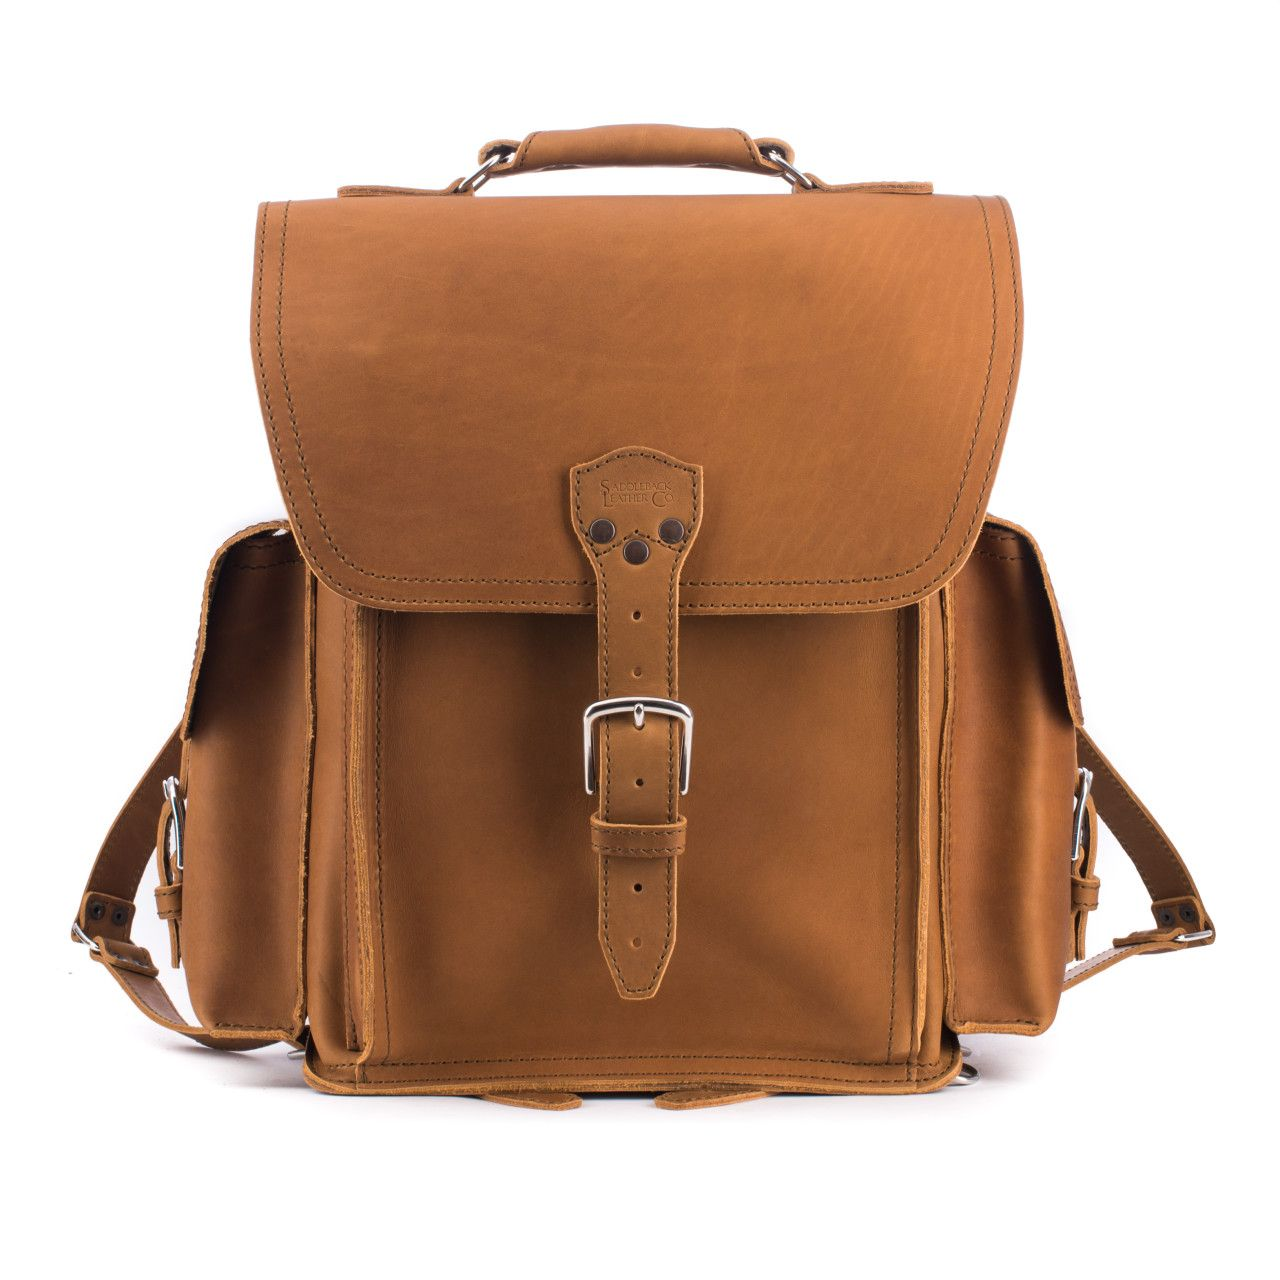 squared leather backpack in tobacco leather